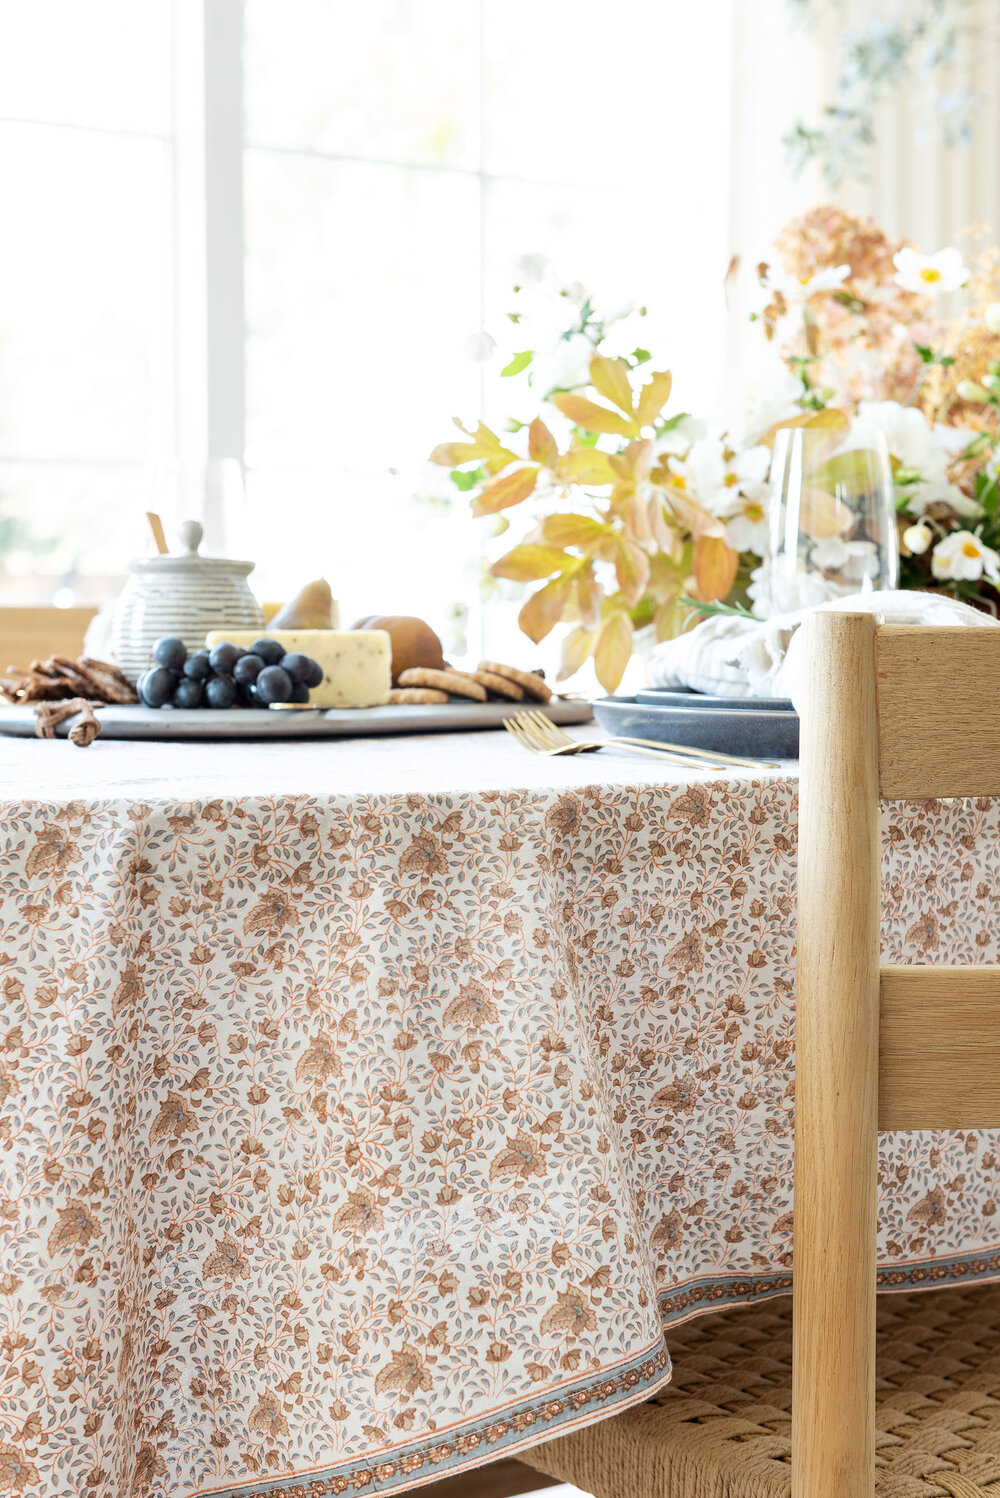 Our Guide to Fall Entertaining